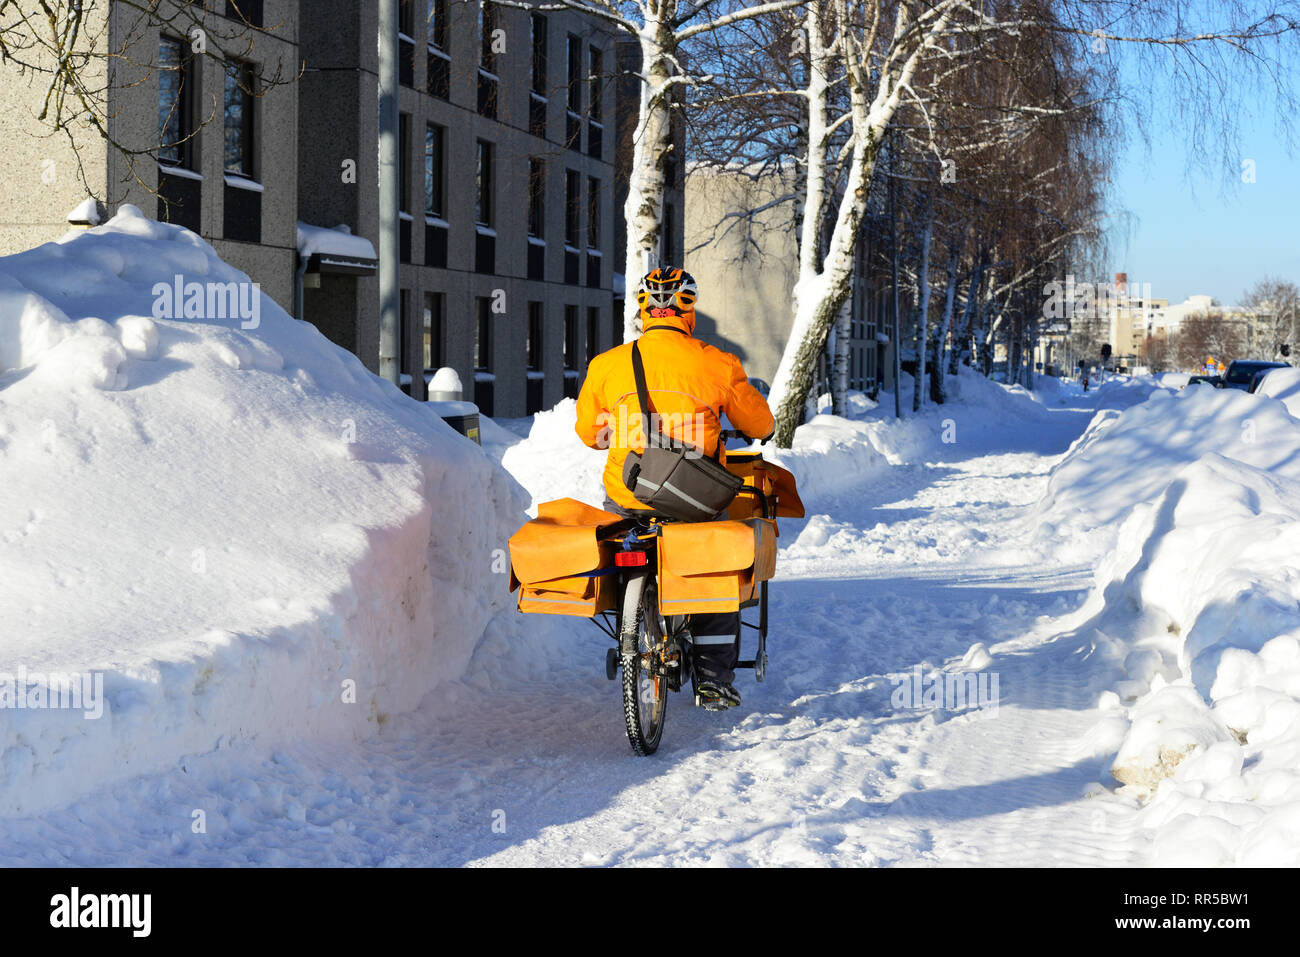 the postman rides a bicycle among the snowdrifts in Finland - Stock Image